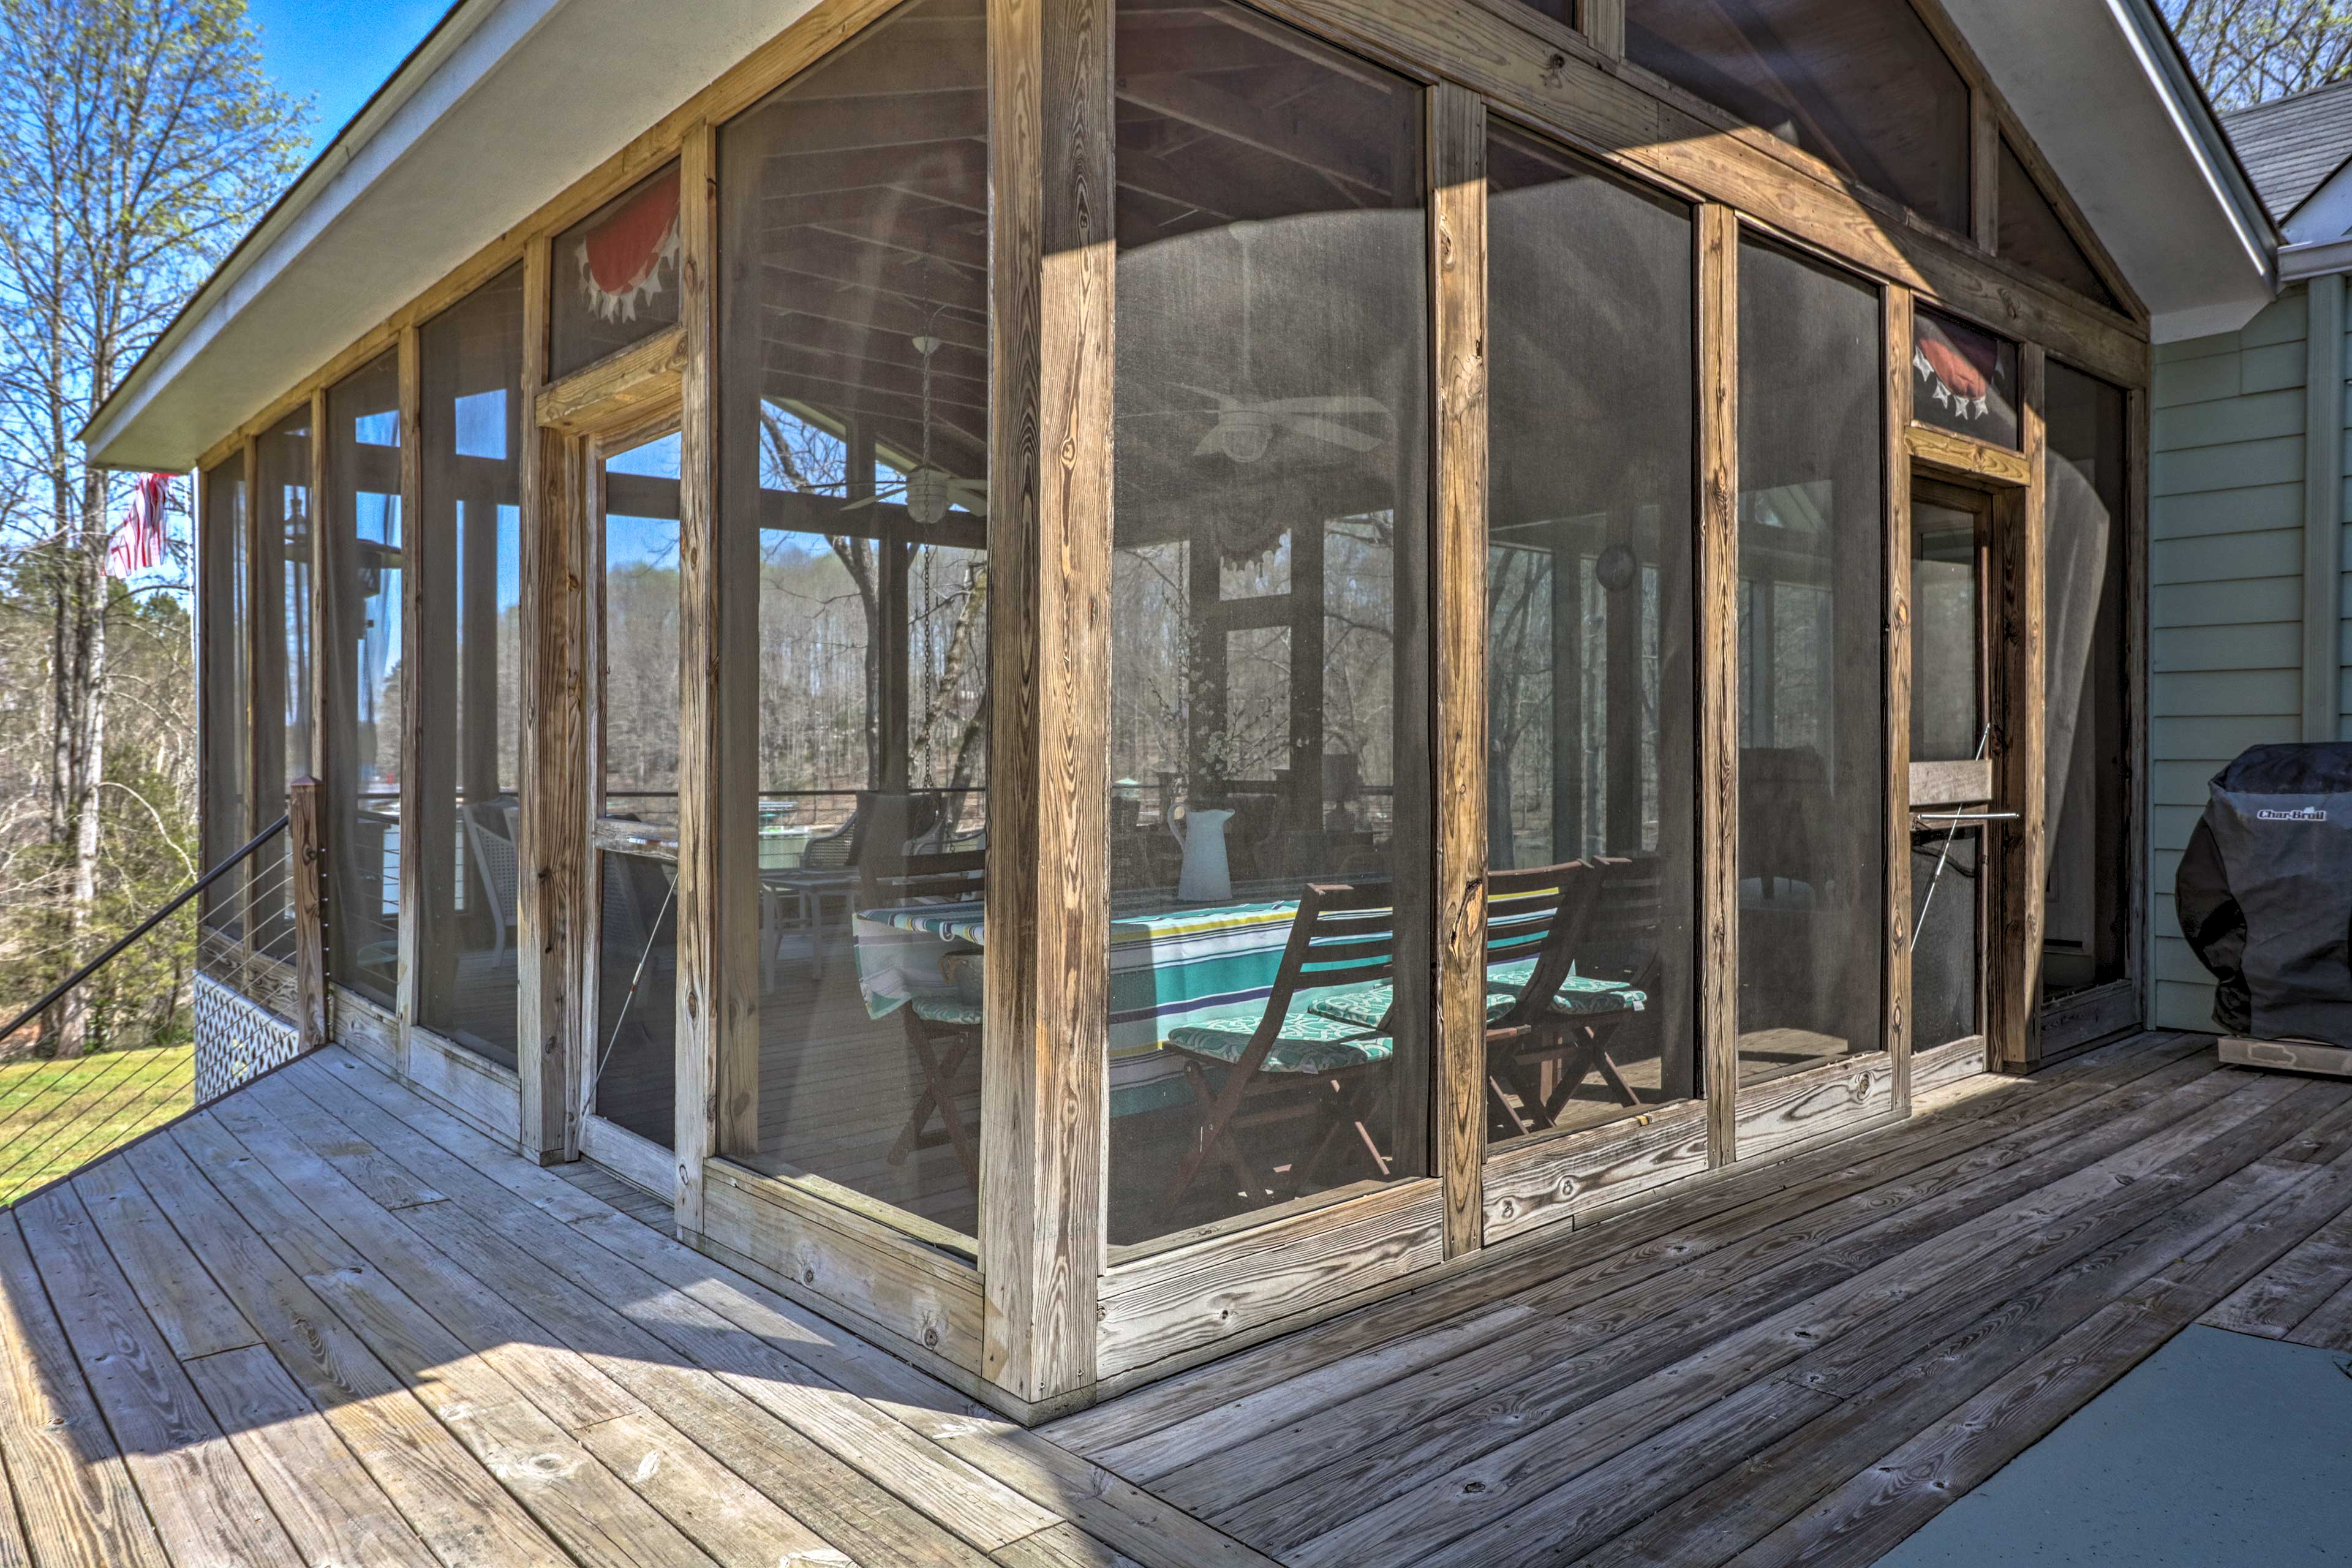 The home features a separate screened-in deck.